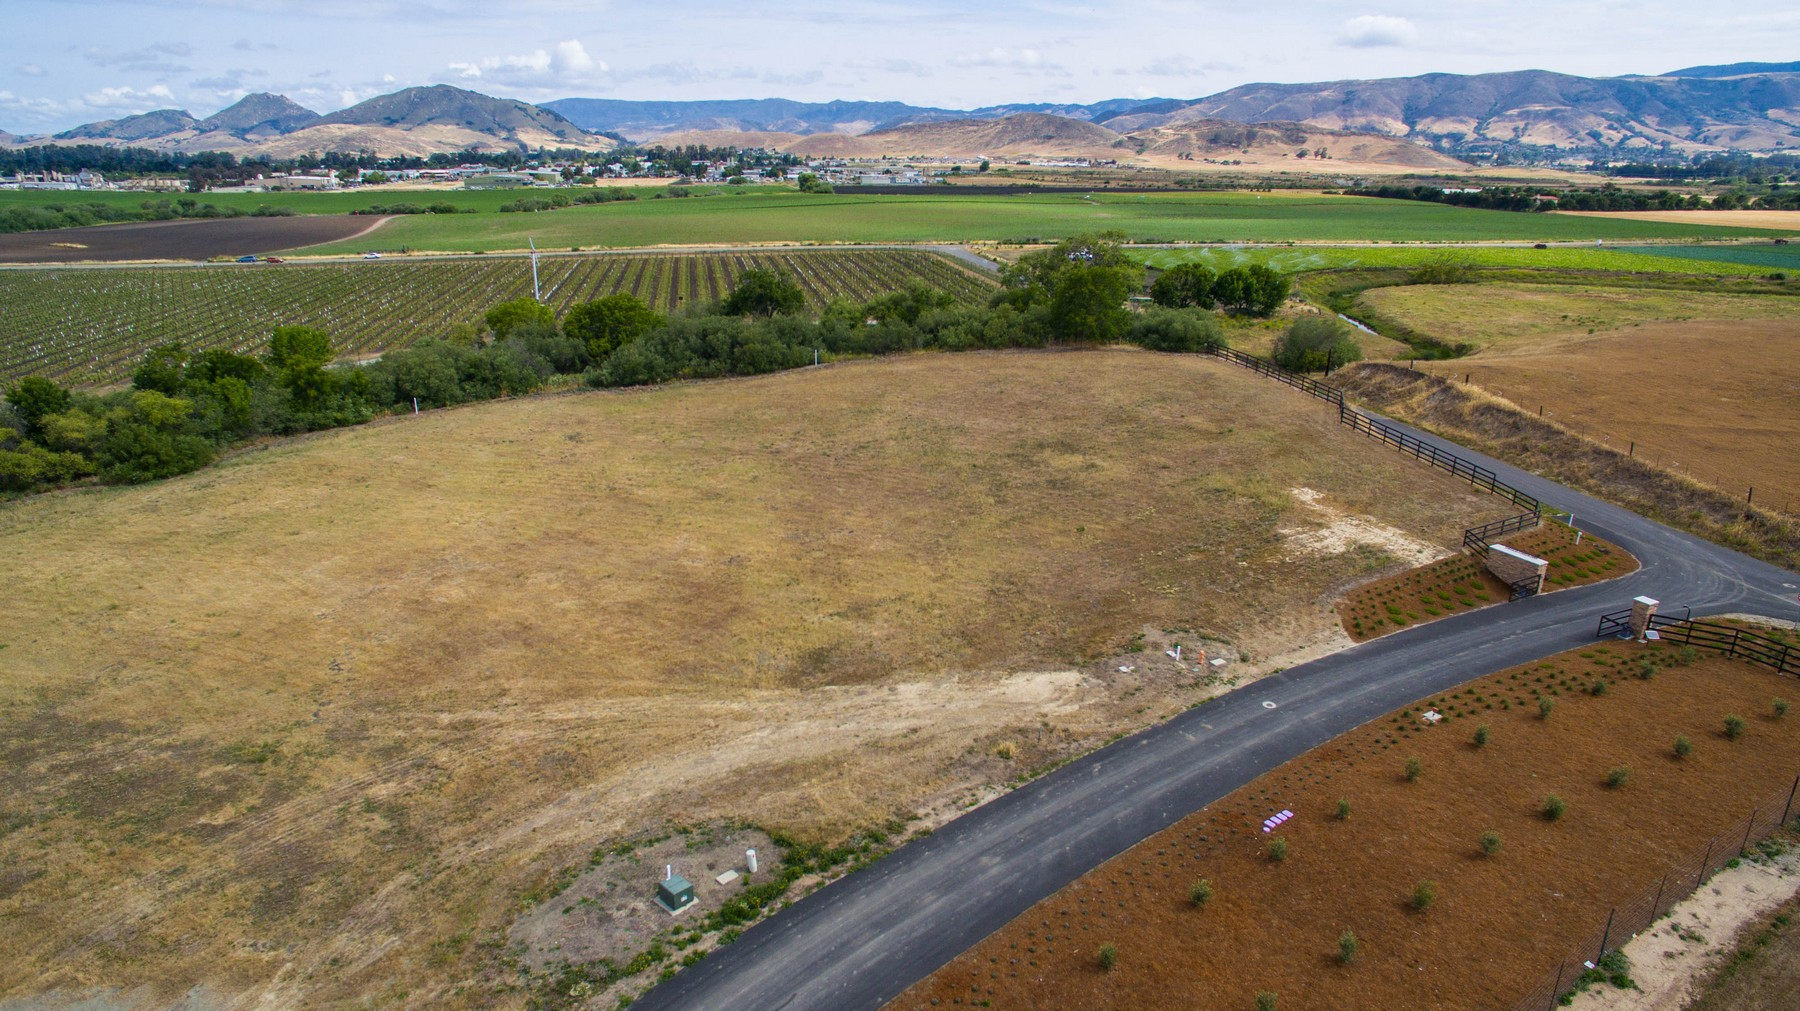 Land for Sale at One Acre Creekside Parcel Jespersen Road #Lot 1 San Luis Obispo, California 93401 United States